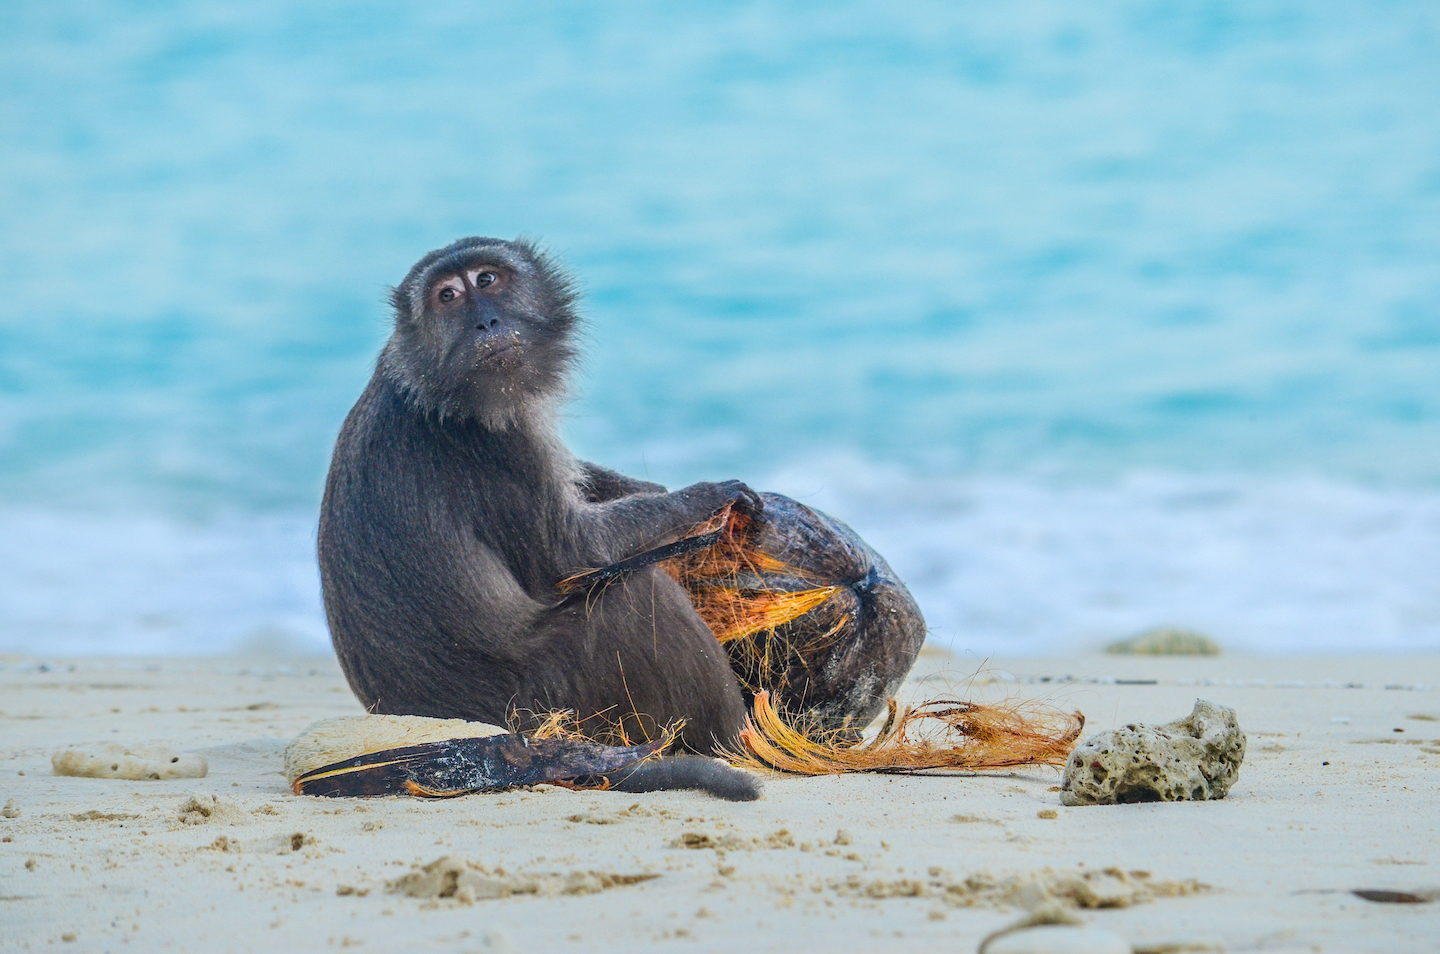 Macaque troops that live close to the coast often venture onto the beach in search of seeds, crustaceans, or scraps that people have discarded. This male found an old coconut and is shredding it in the hope of finding copra inside.